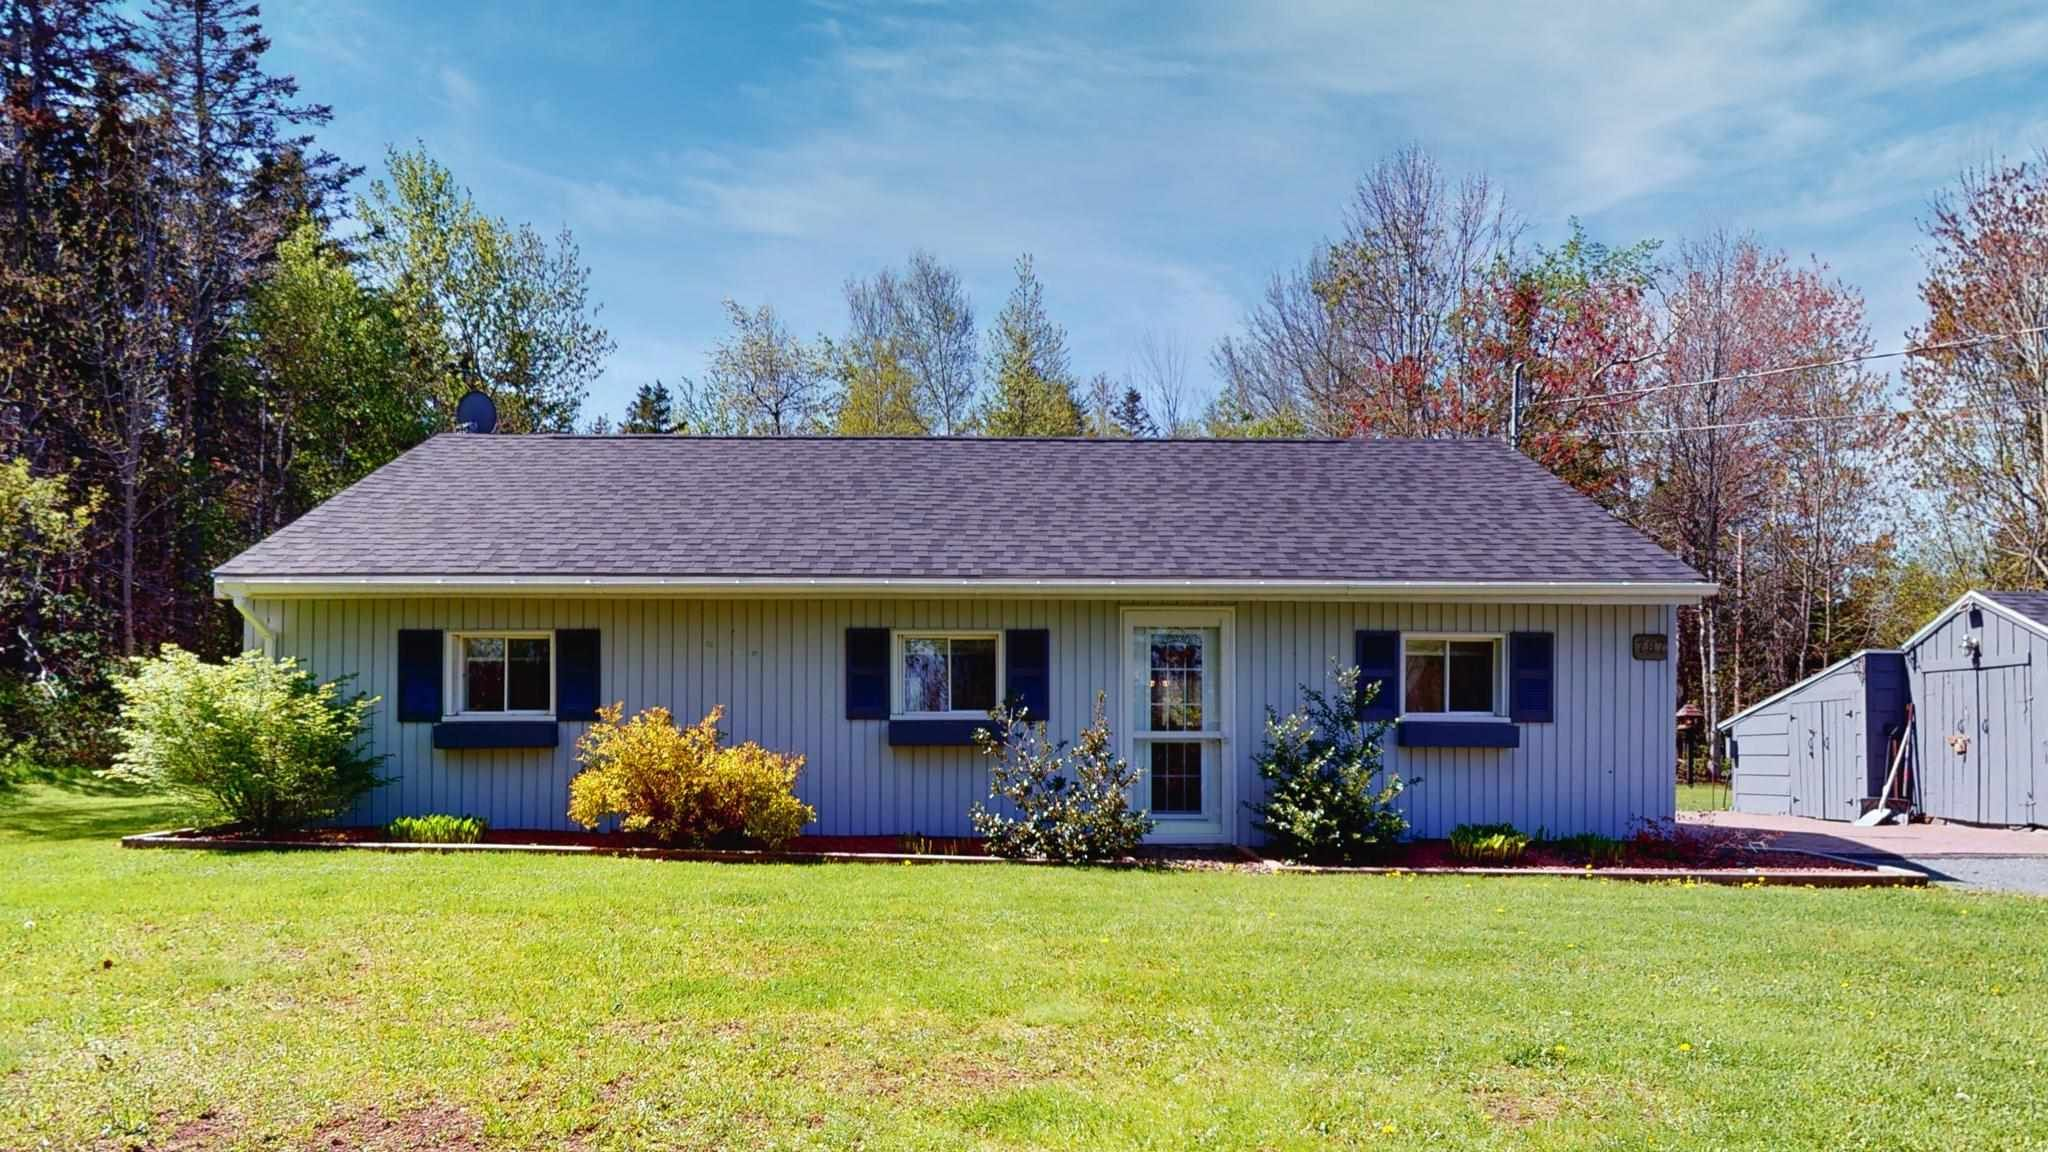 Main Photo: 787 English Mountain Road in South Alton: 404-Kings County Residential for sale (Annapolis Valley)  : MLS®# 202112928